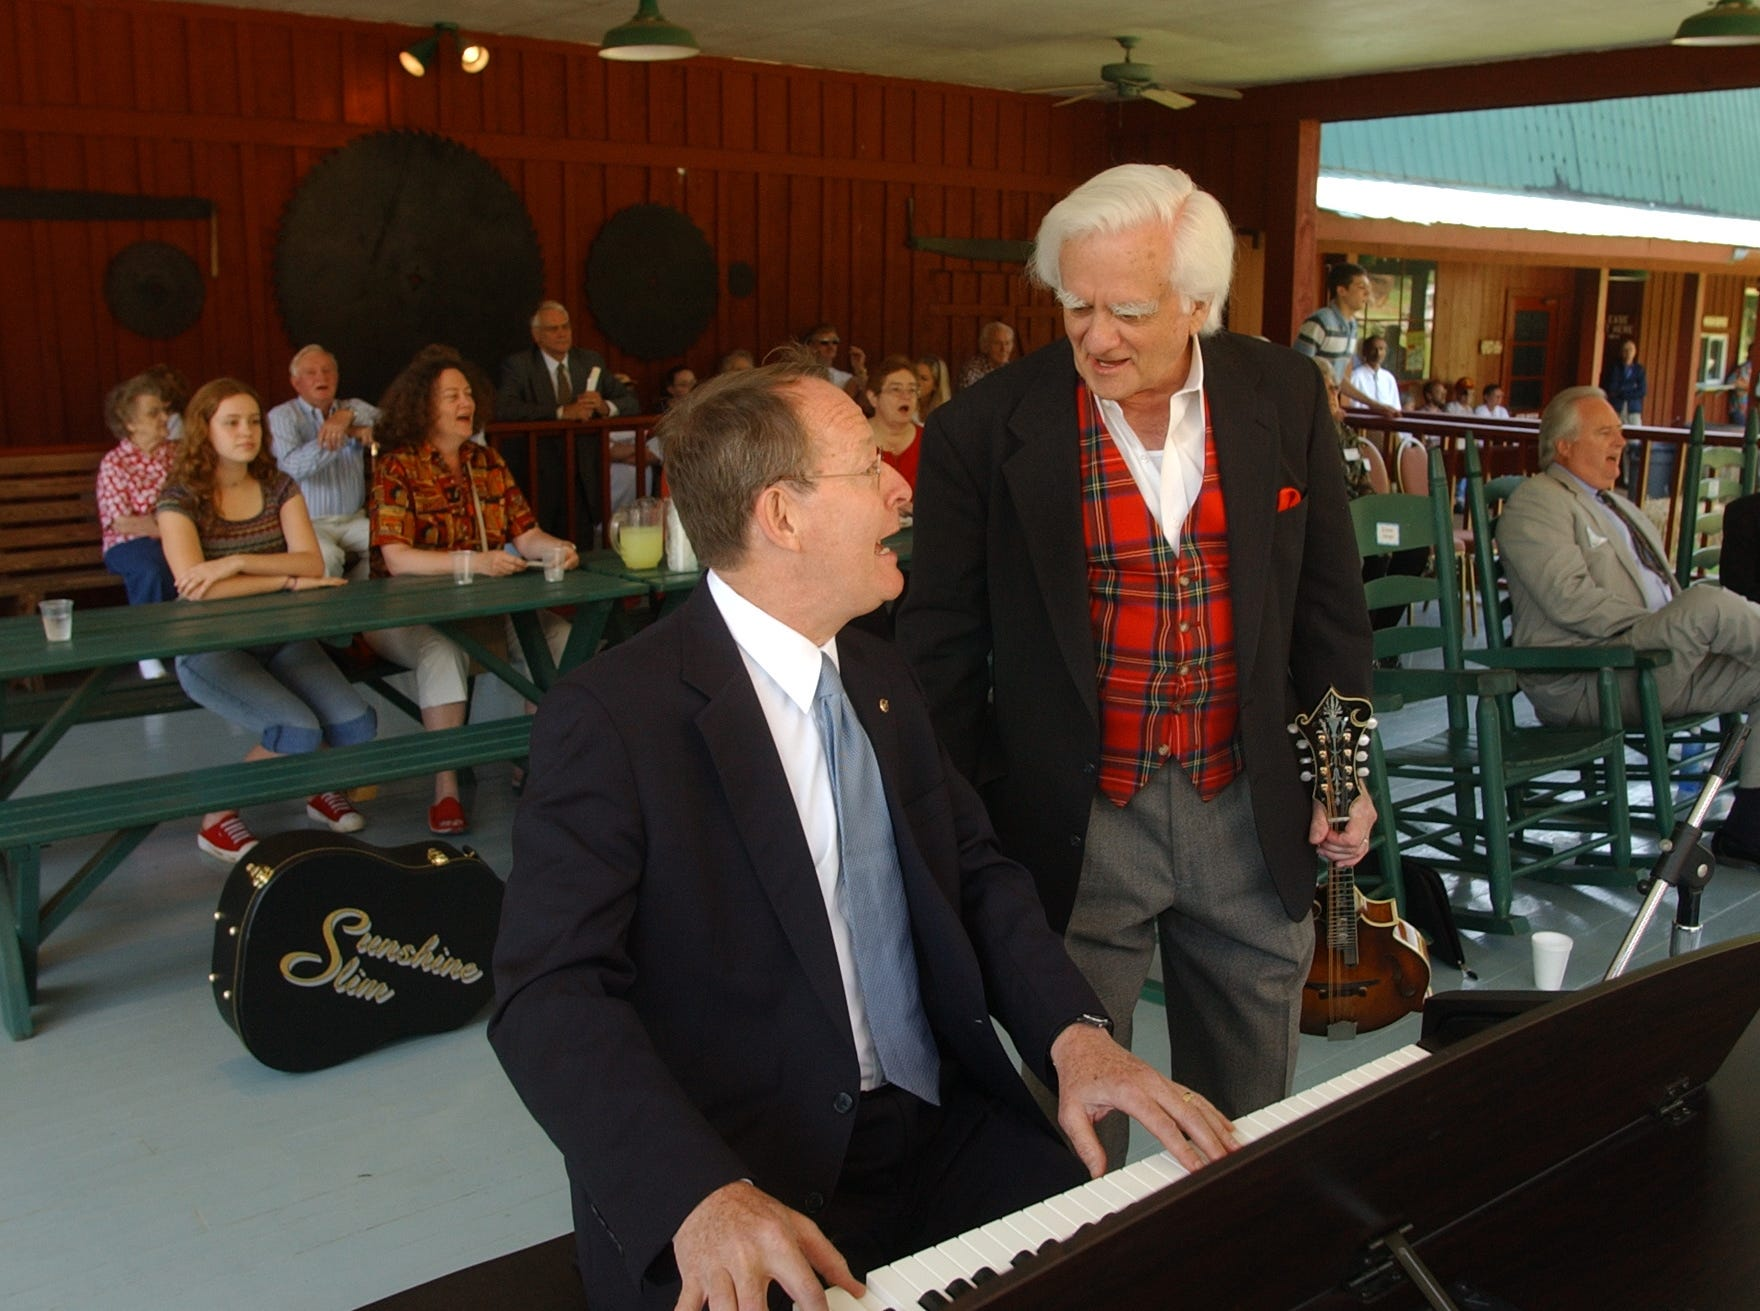 "U.S. Senator Lamar Alexander R-Tenn.,  plays the piano and talks with John Rice Irwin, Museum founder and President during ceremonies Wednesday morning. A host of dignitaries and local people gathered at the Museum fof Appalachia  for what the founder of the Anderson County cultural instuation called a ""Grand Opening and Grand Grand Giveway"".   John Rice Irwin, the founder of the Museum fo Appalachia in Norris 35 years ago held a ribbon cutting 35 years after the museum opened and then turned the whole organization over to a nonprofit foundation."